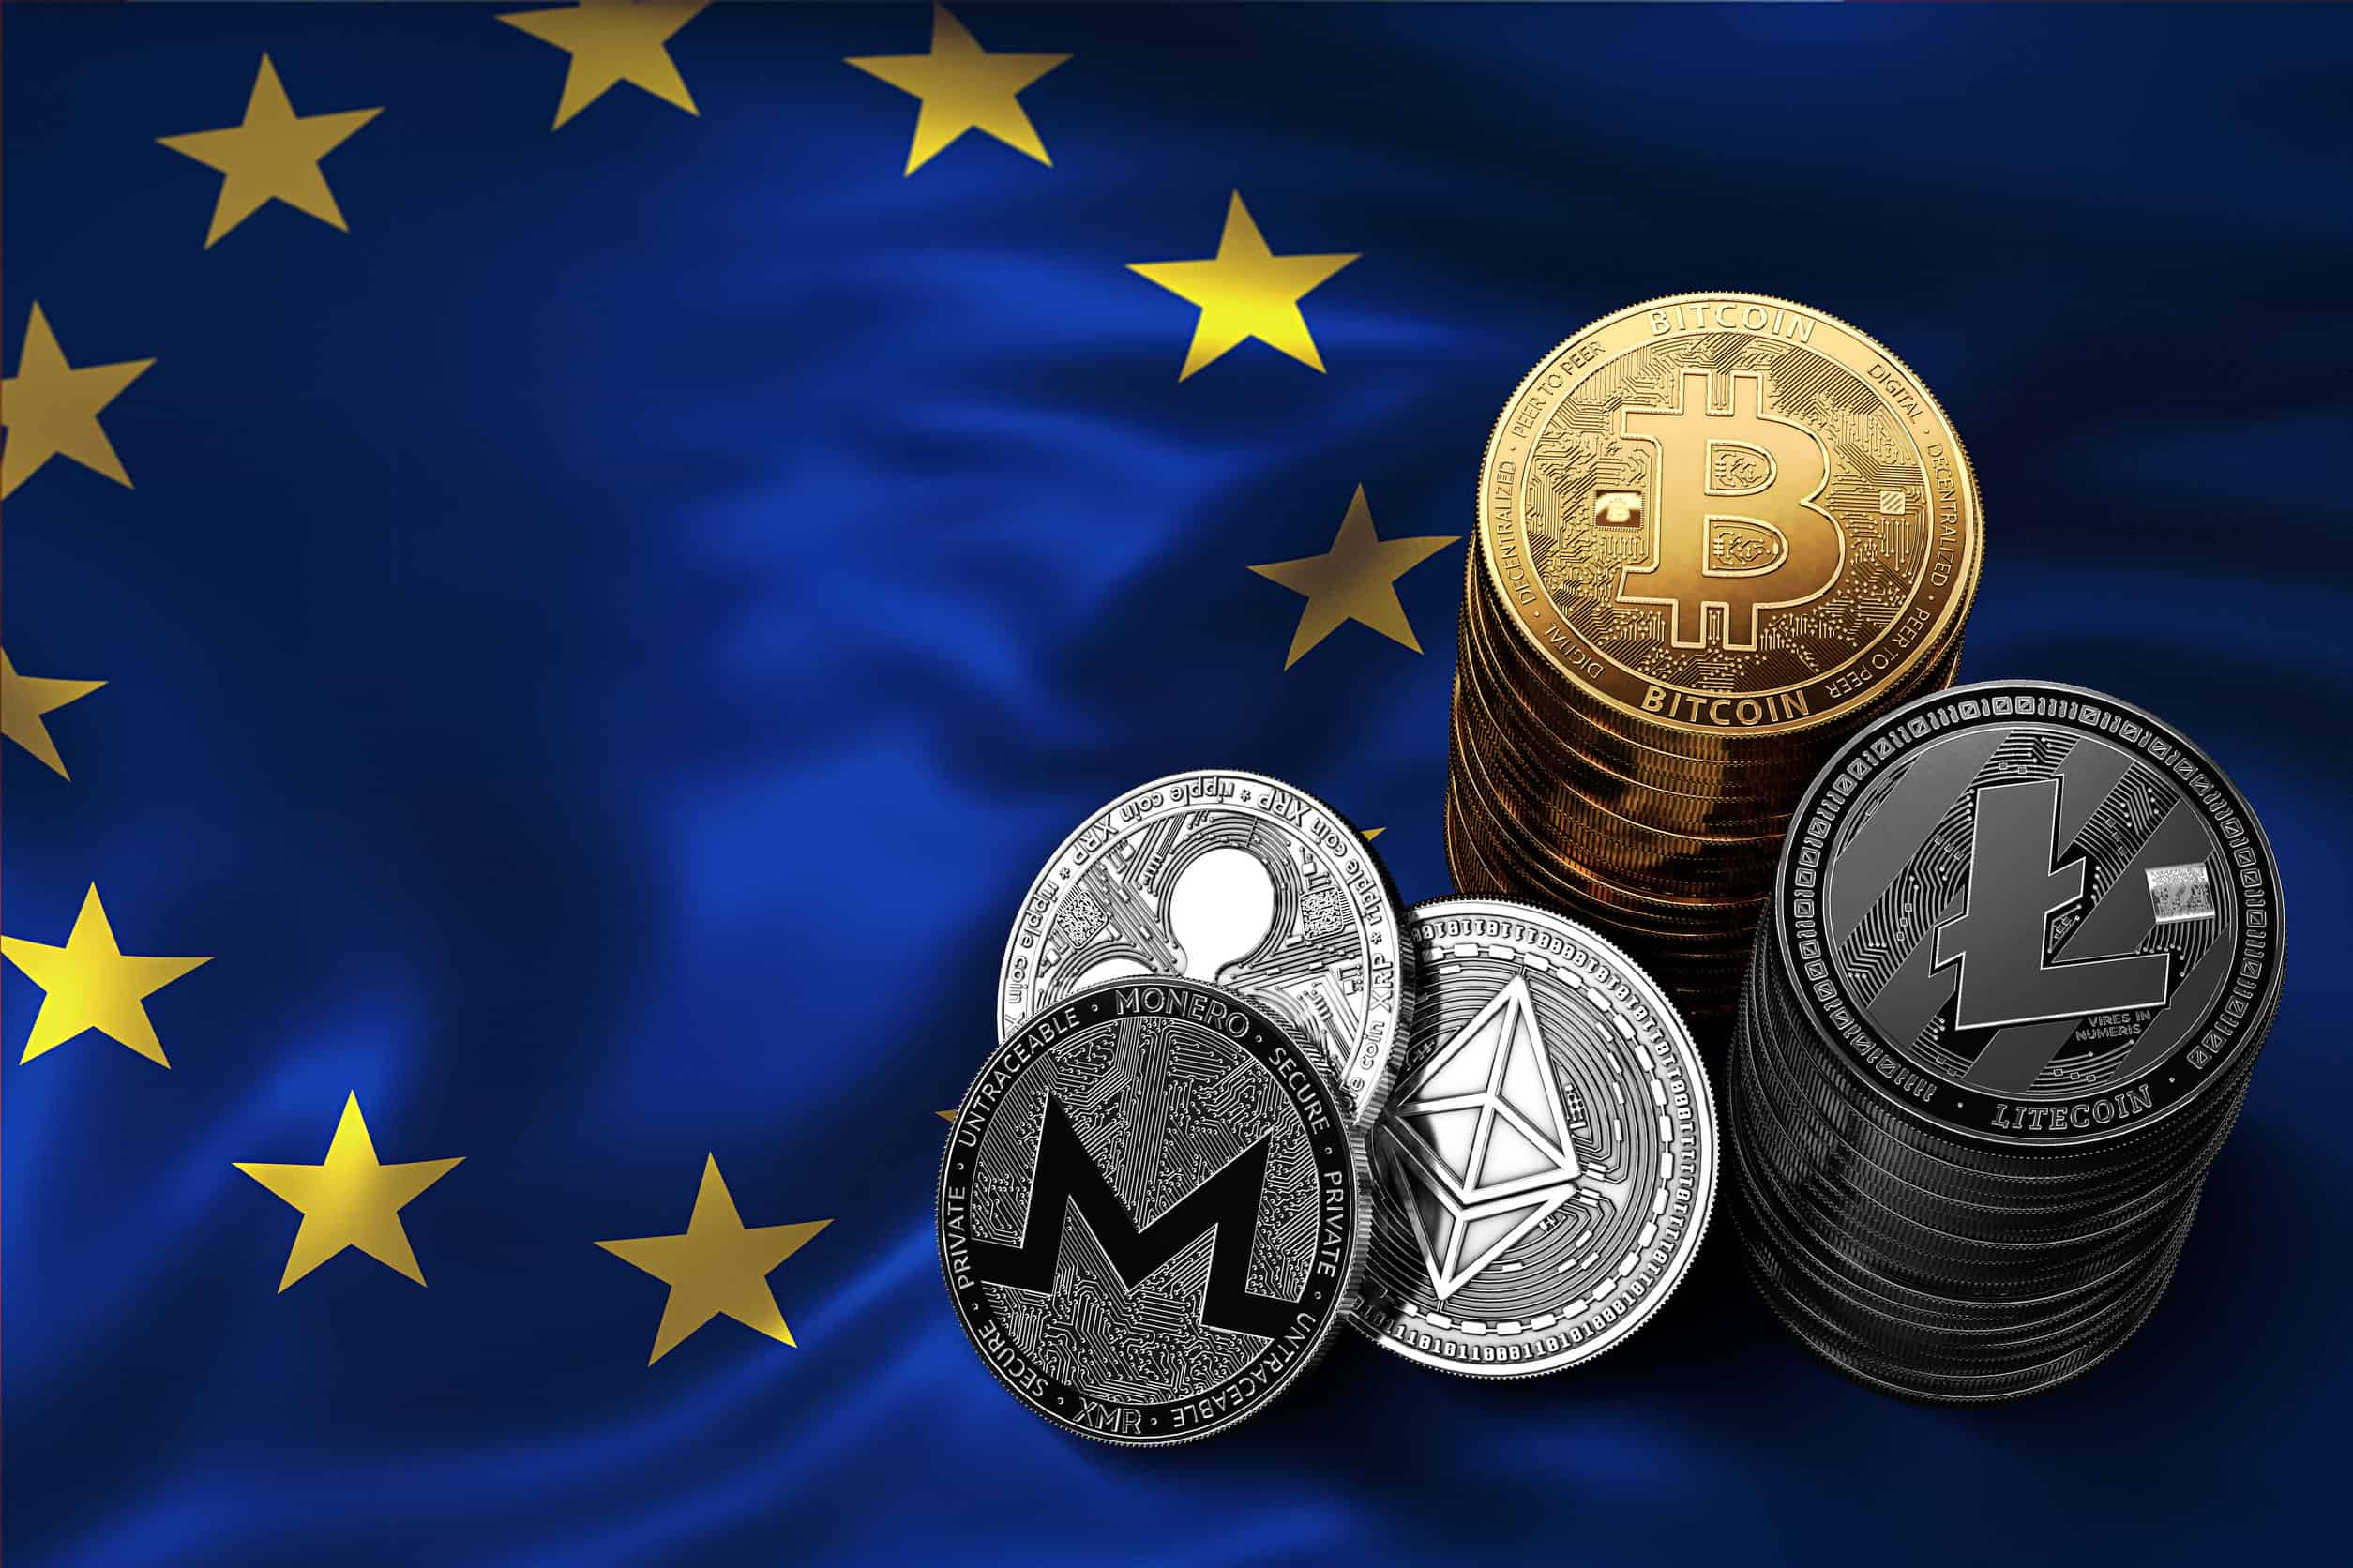 Bitcoin Tipping Site Shutdowns as EU Regulations Threaten Crypto Collapse in 2020